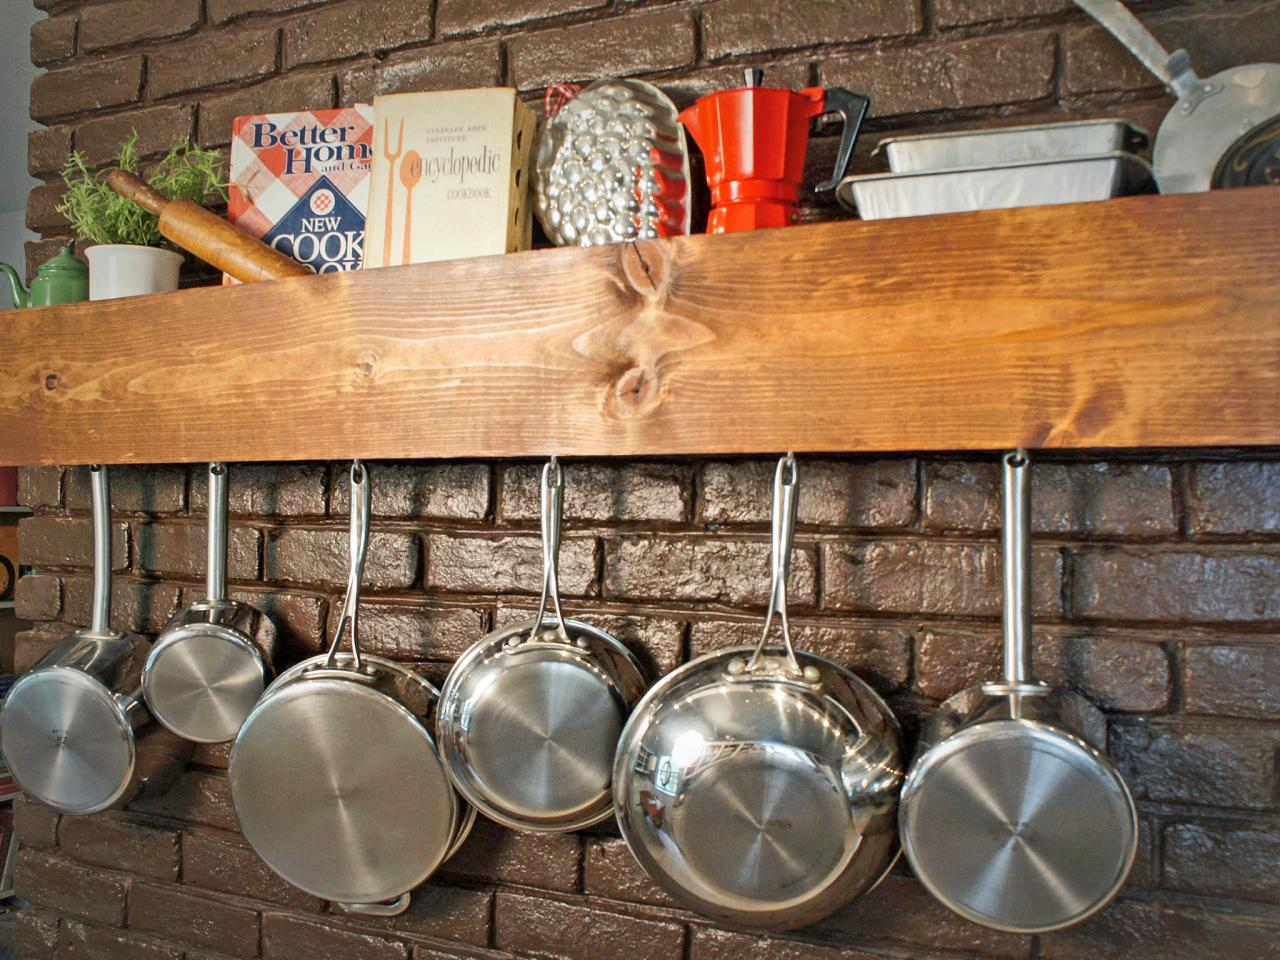 Kitchen Storage Ideas For Pots And Pans Diy Kitchen Storage Shelf And Pot Rack  Hgtv